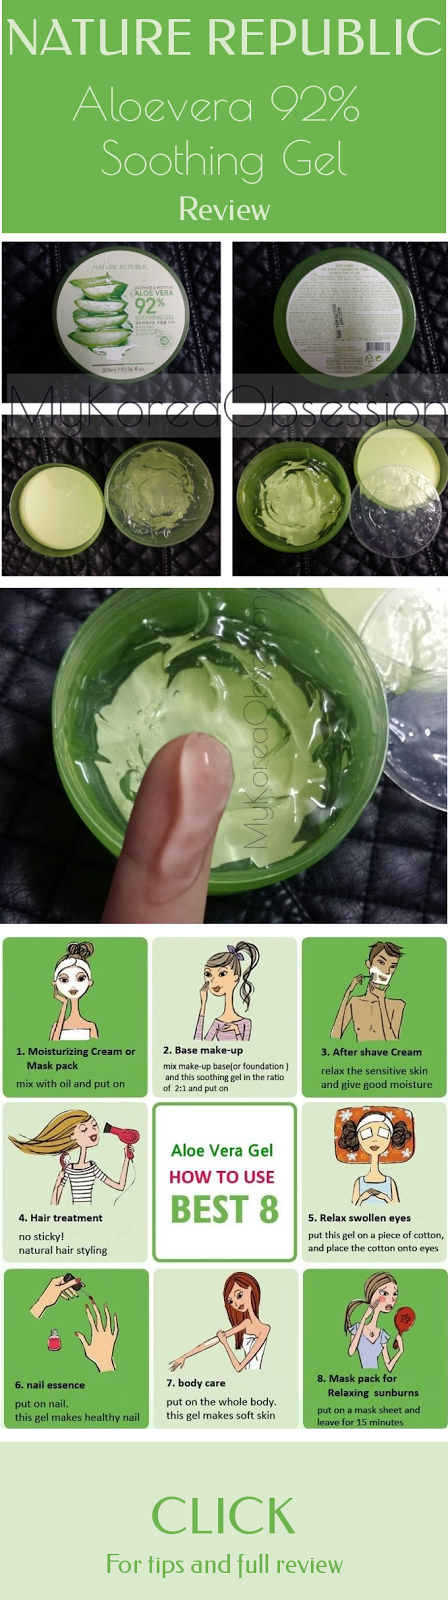 Nature Republic Aloe Vera 92 Soothing Gel Review This Gel Is The Real Meaning Of A Holy Grail Beauty Pro In 2020 Nature Republic Aloe Vera Skin Care Acne Skin Care